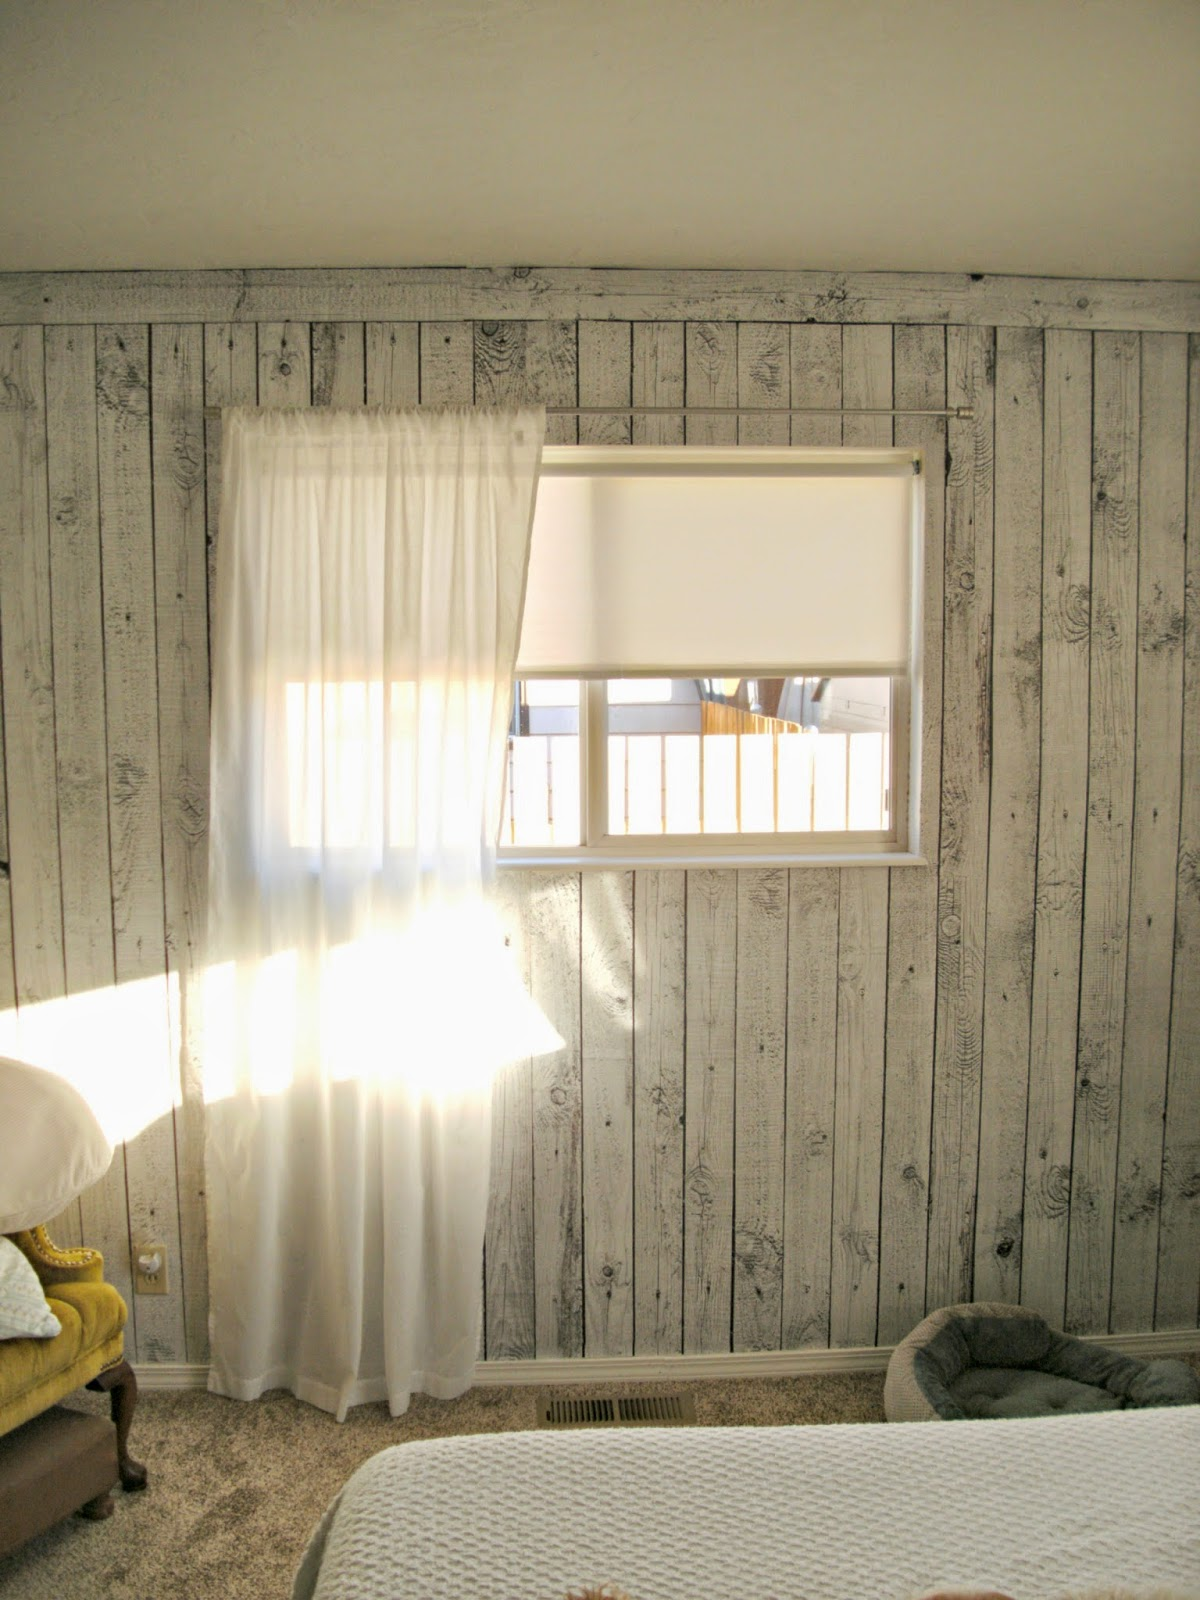 Privacy Curtain For Bedroom Master Bedroom Redo Inexpensive Window Coverings Little